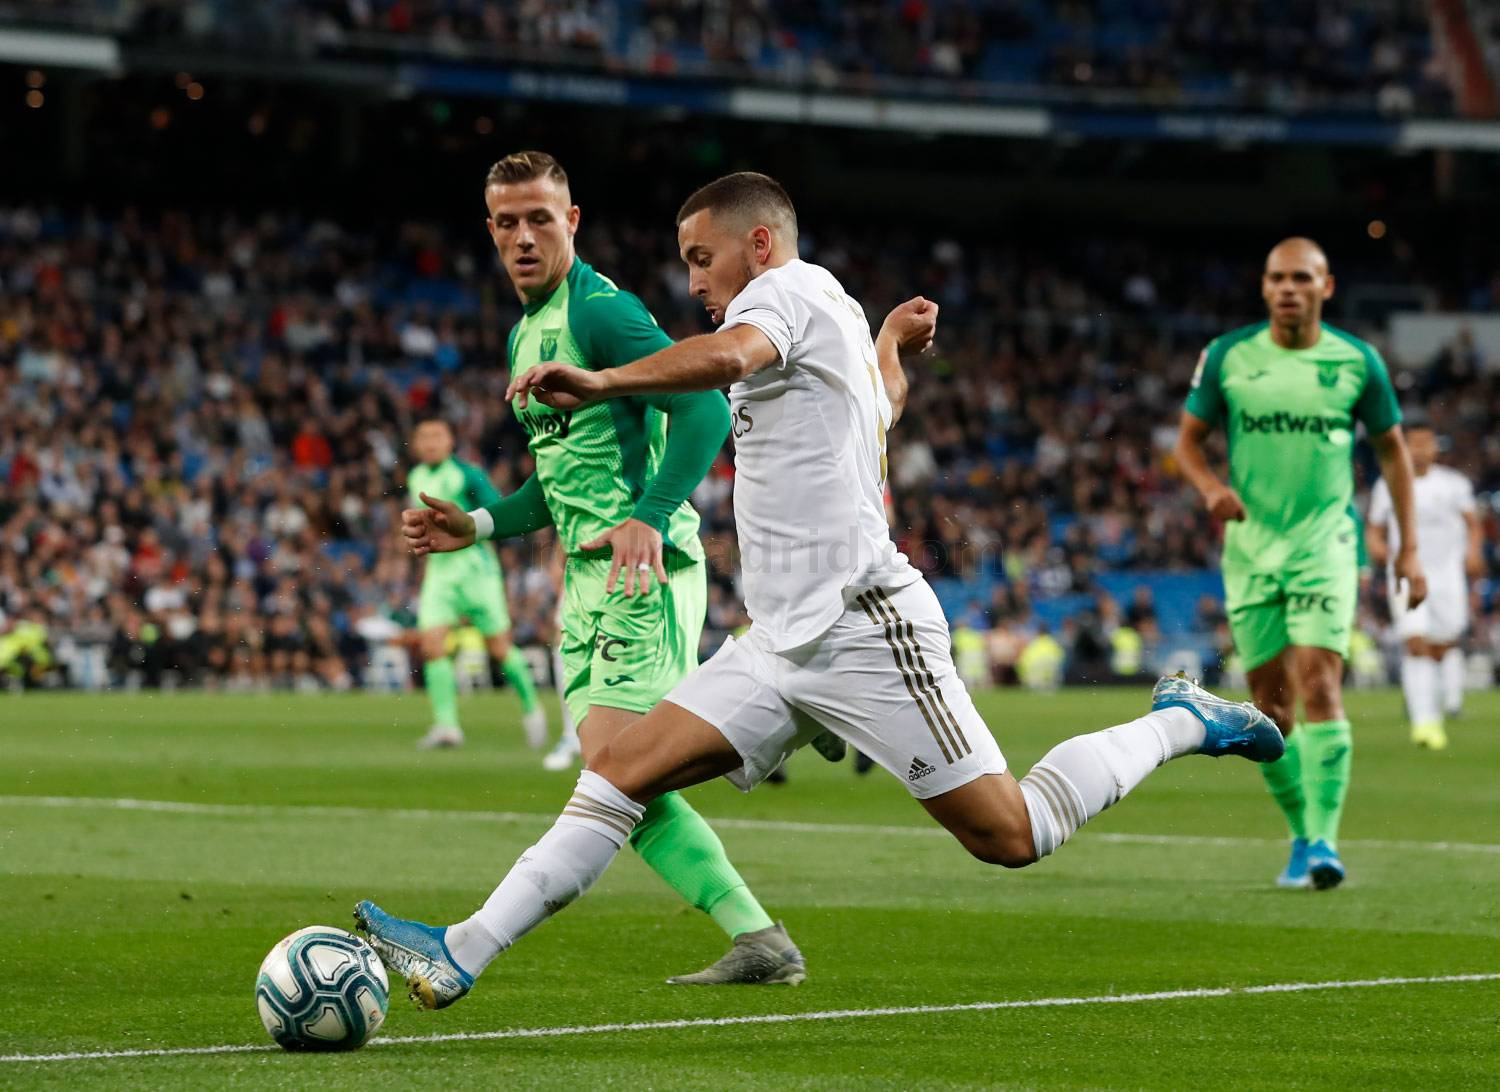 Real Madrid - Real Madrid - Leganés - 30-10-2019